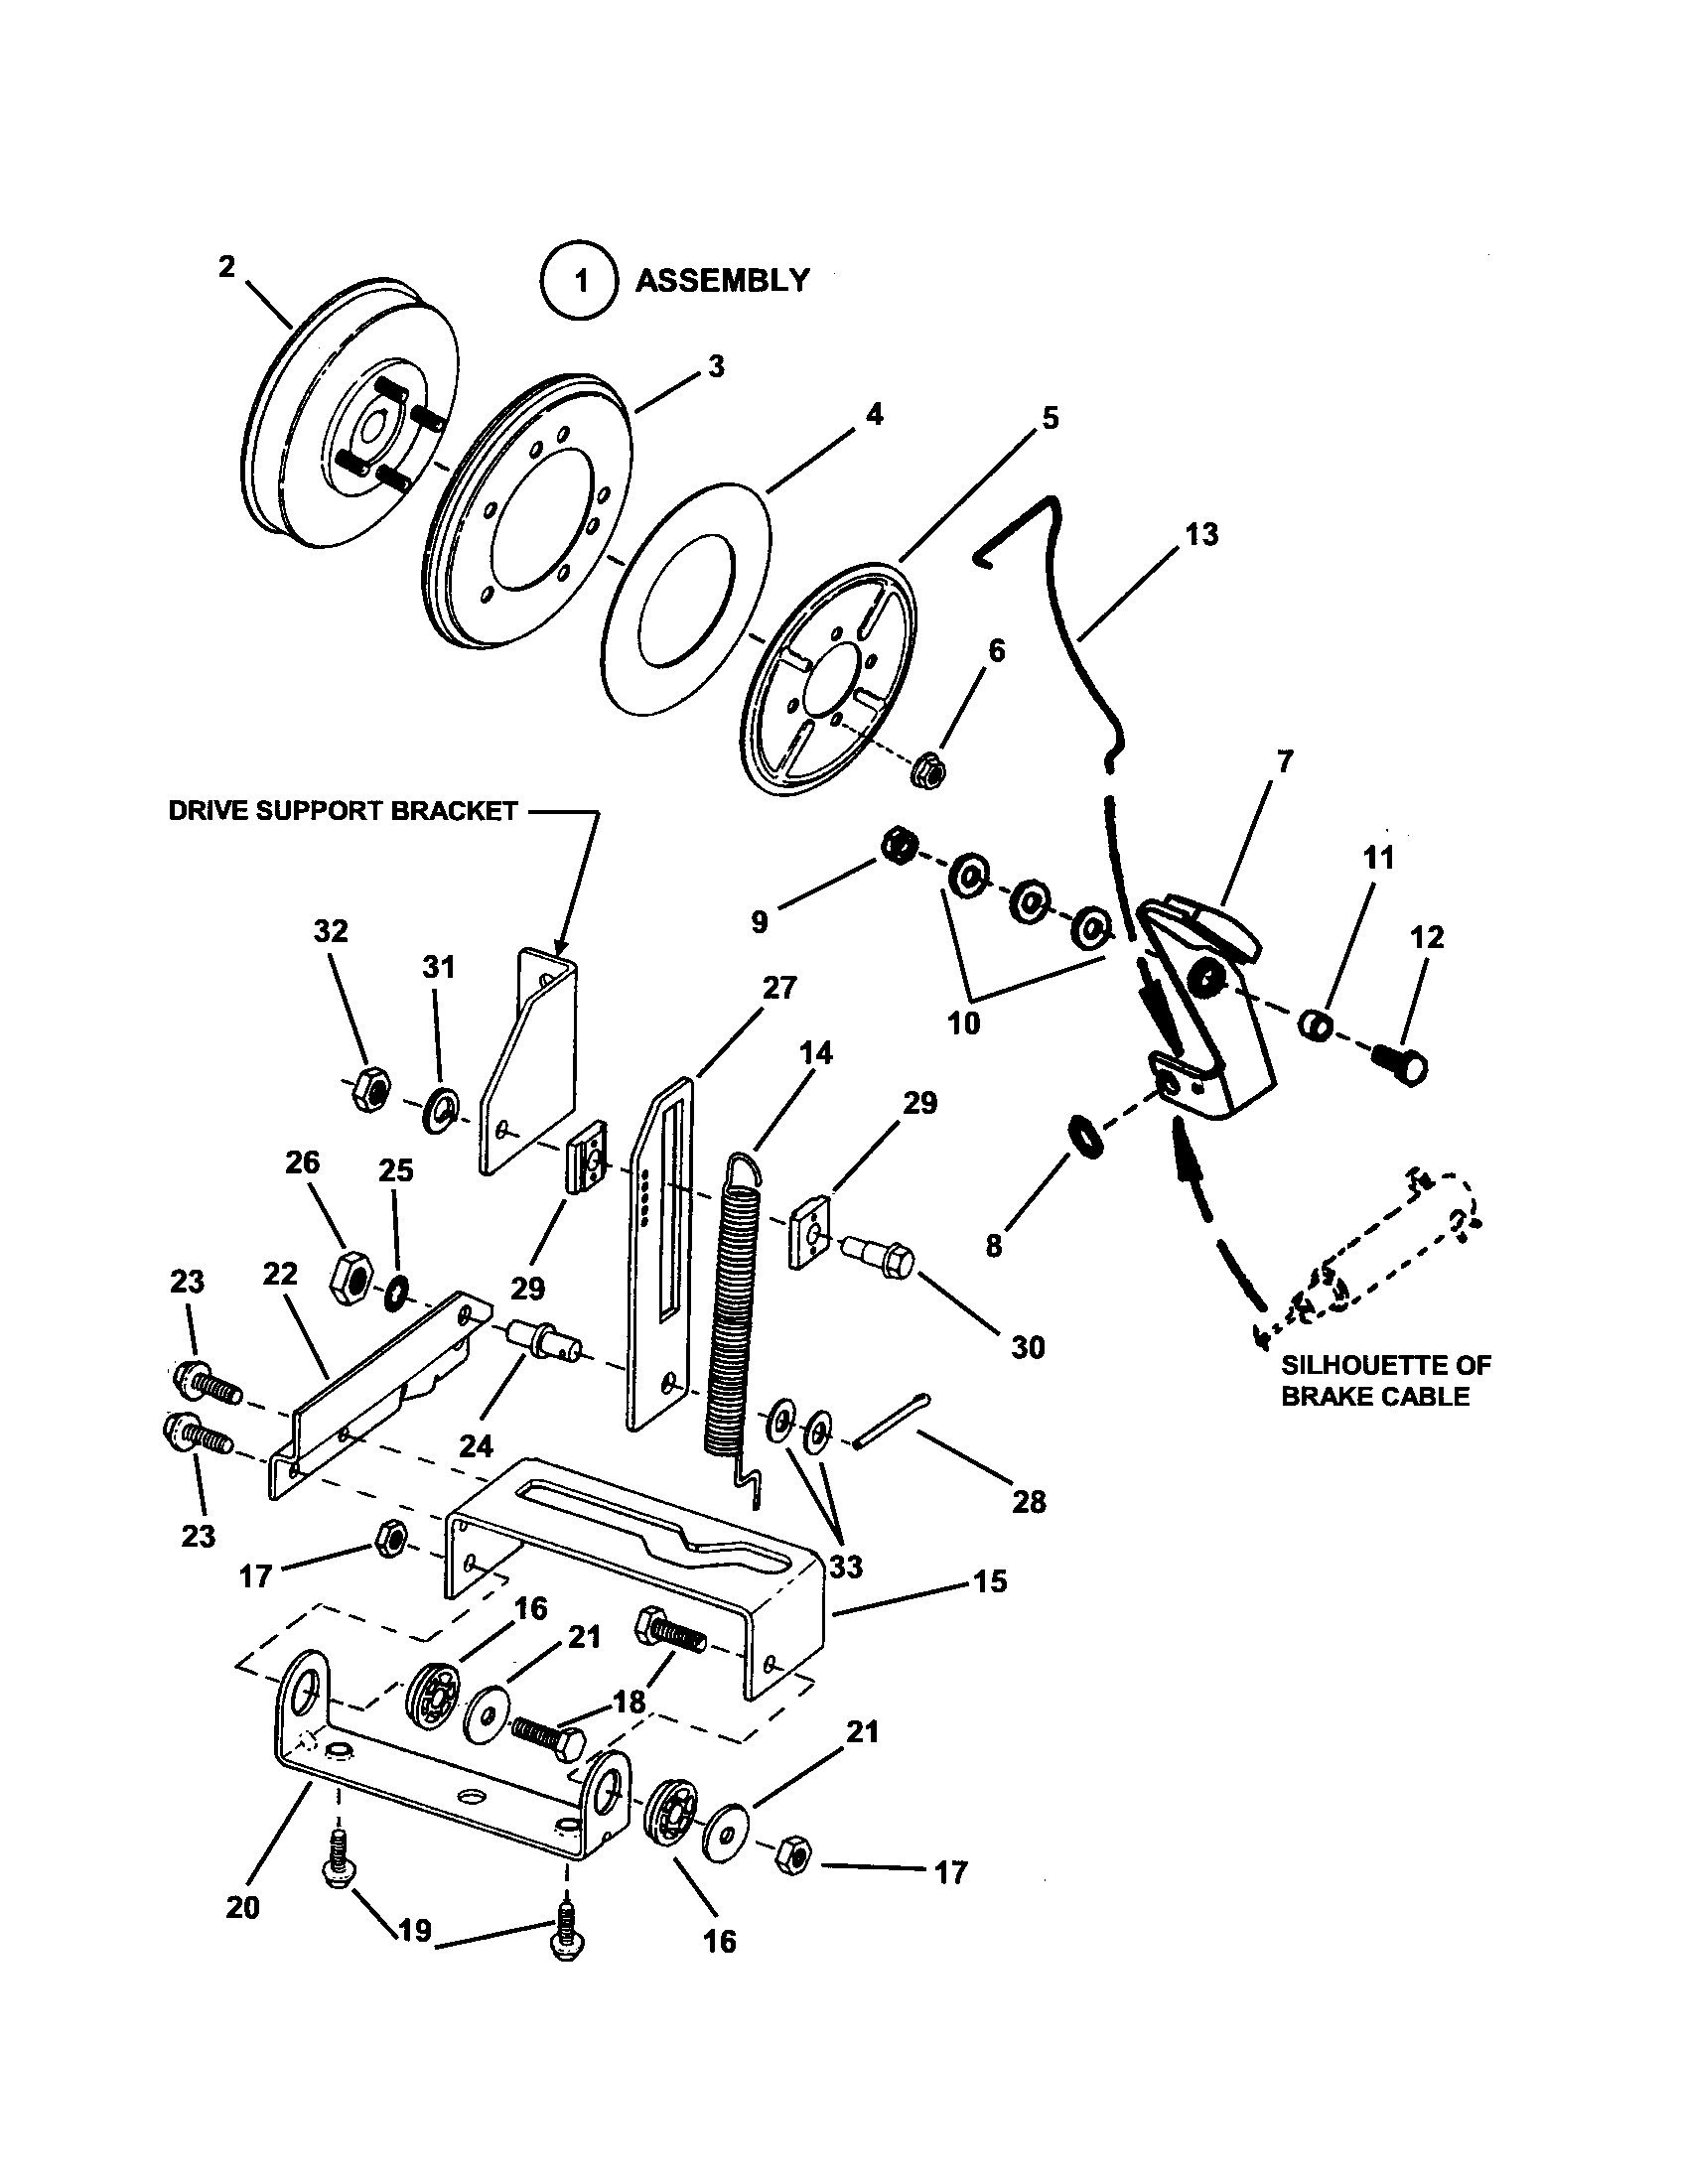 Craftsman Lawn Mower Engine Parts Diagram Snapper Model M Be Lawn Riding Mower Rear Engine Genuine Parts Of Craftsman Lawn Mower Engine Parts Diagram